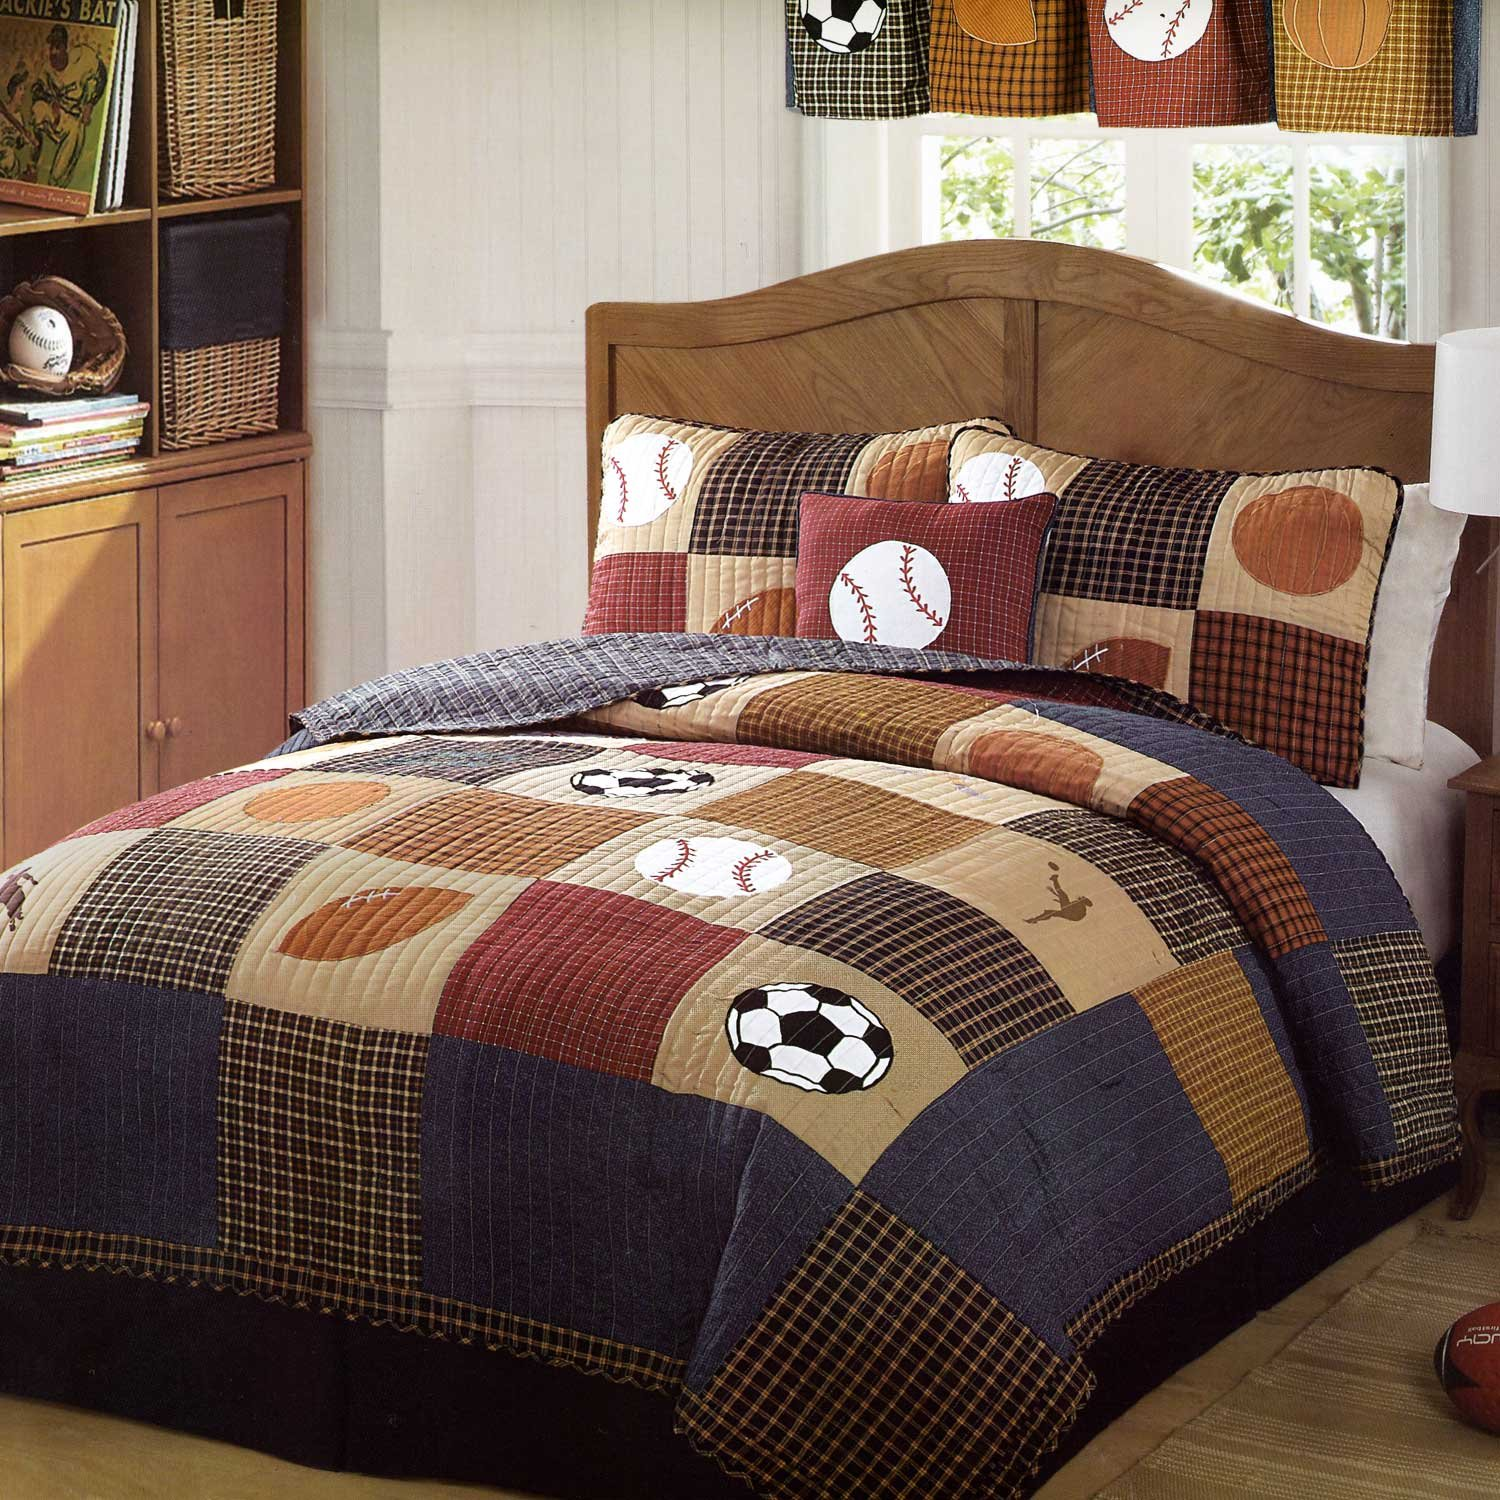 Amazoncom Classic Sports Quilt Set Twin Home Kitchen - Boys sports bedding sets twin